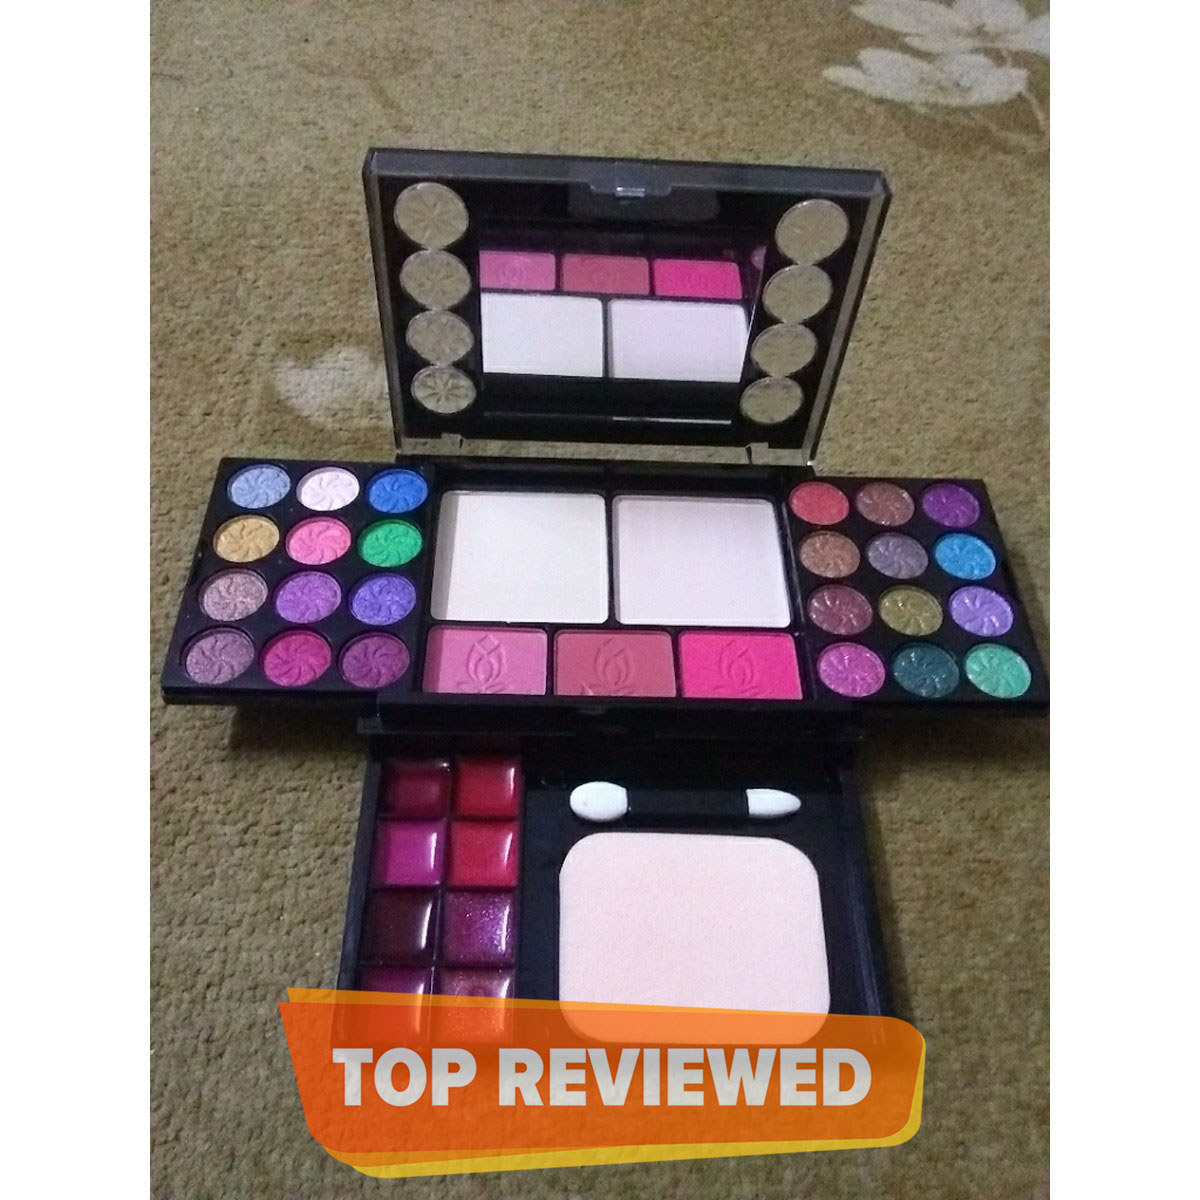 All in one Eye shadow kit - Travelling pack with to small brushes Easy To Handle Make-up Kit New Fashion